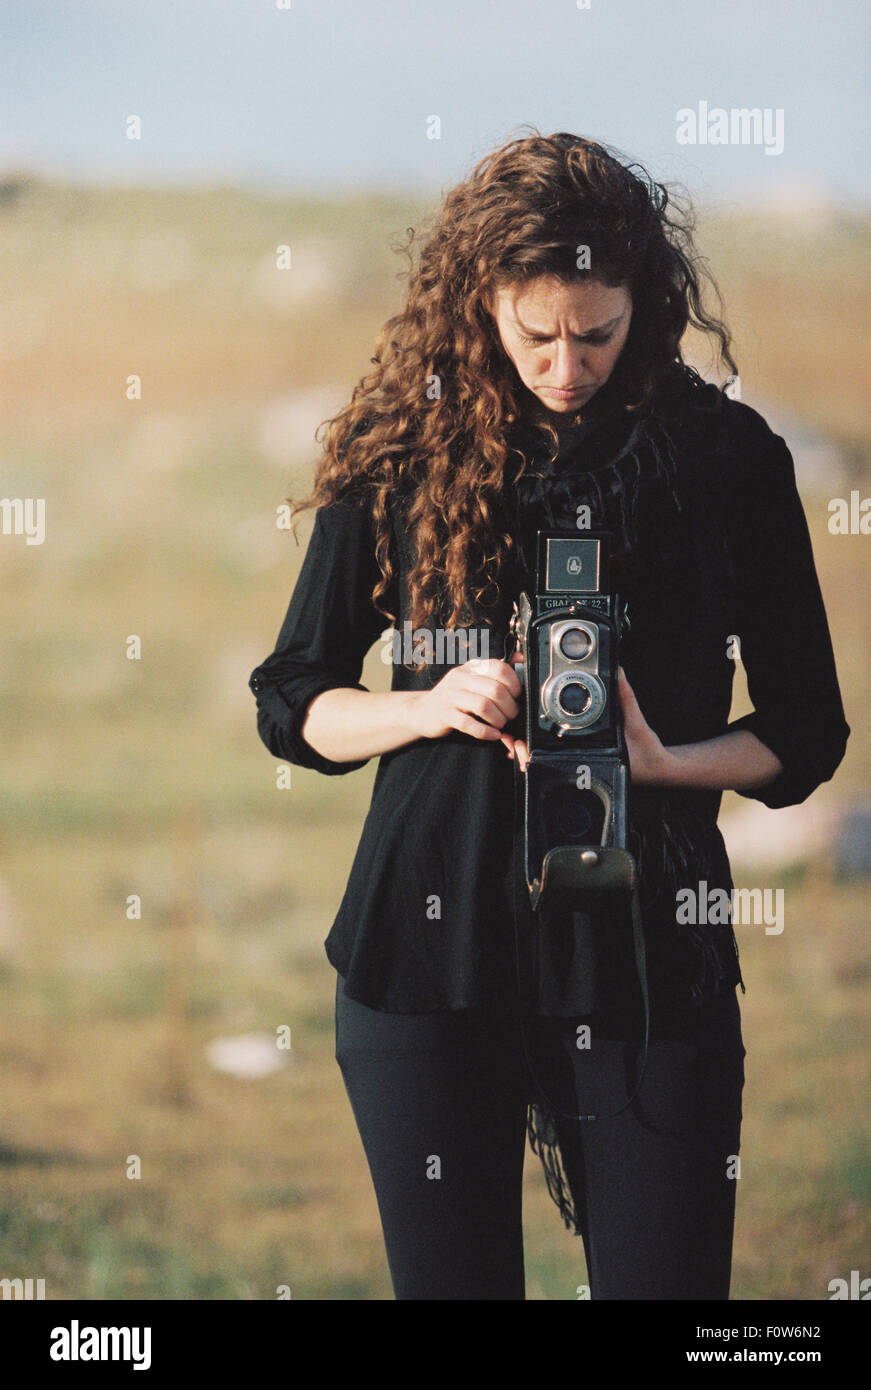 A woman taking a picture with an old fashioned medium format camera. - Stock Image